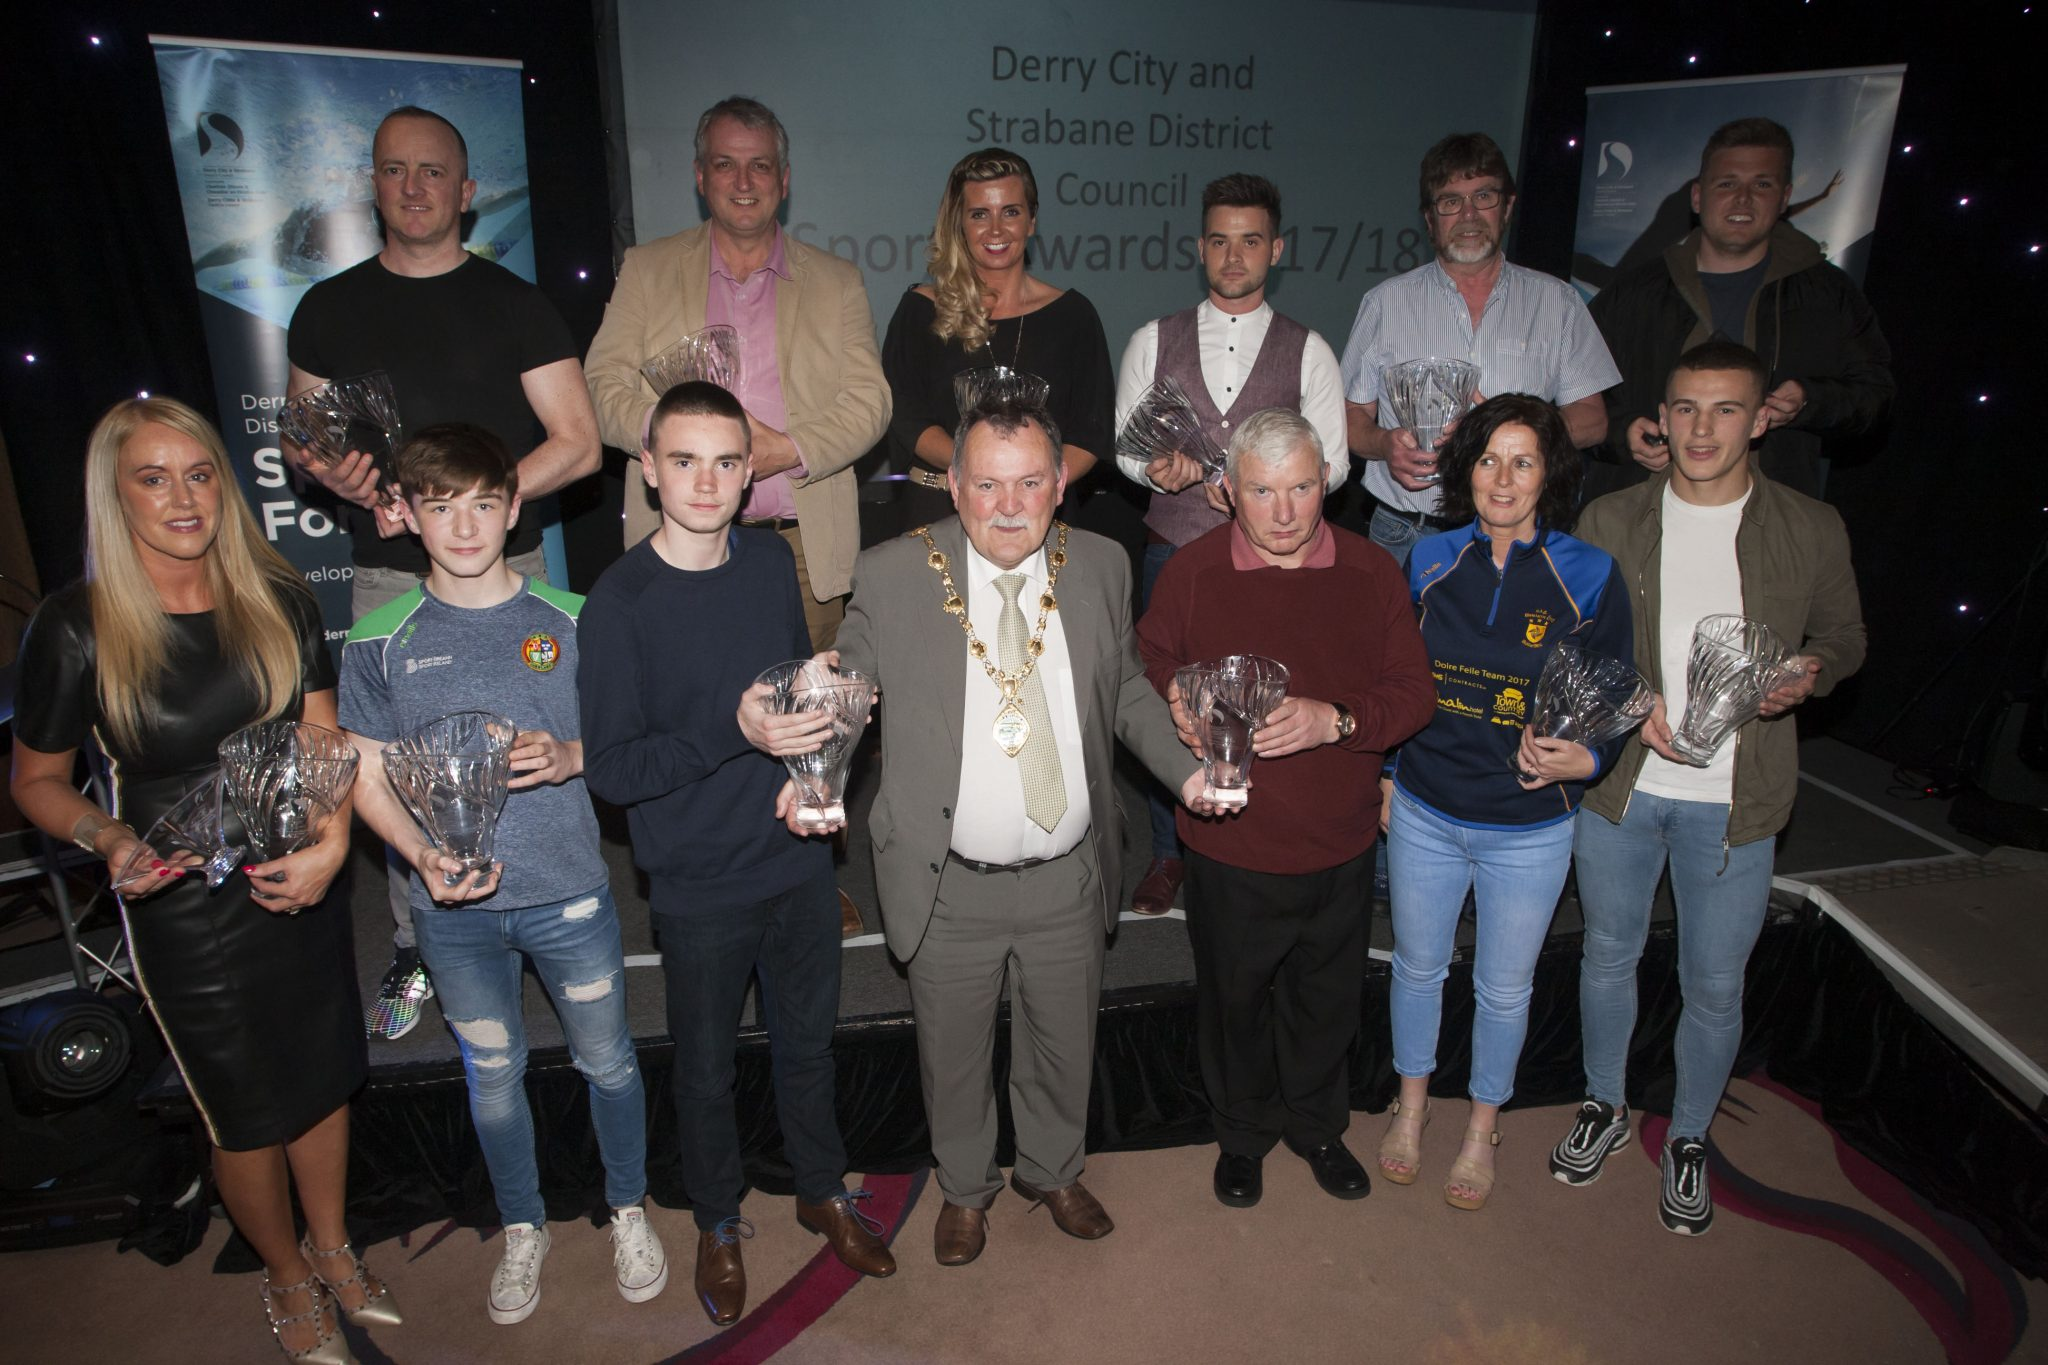 The Mayor of Derry City and Strabane District Council, Councillor Maoliosa McHugh pictured with individual award winners at the DCSDC Annual Sports Awards held in the City Hotel on Wednesday night last. Credit Jim McCafferty Photography